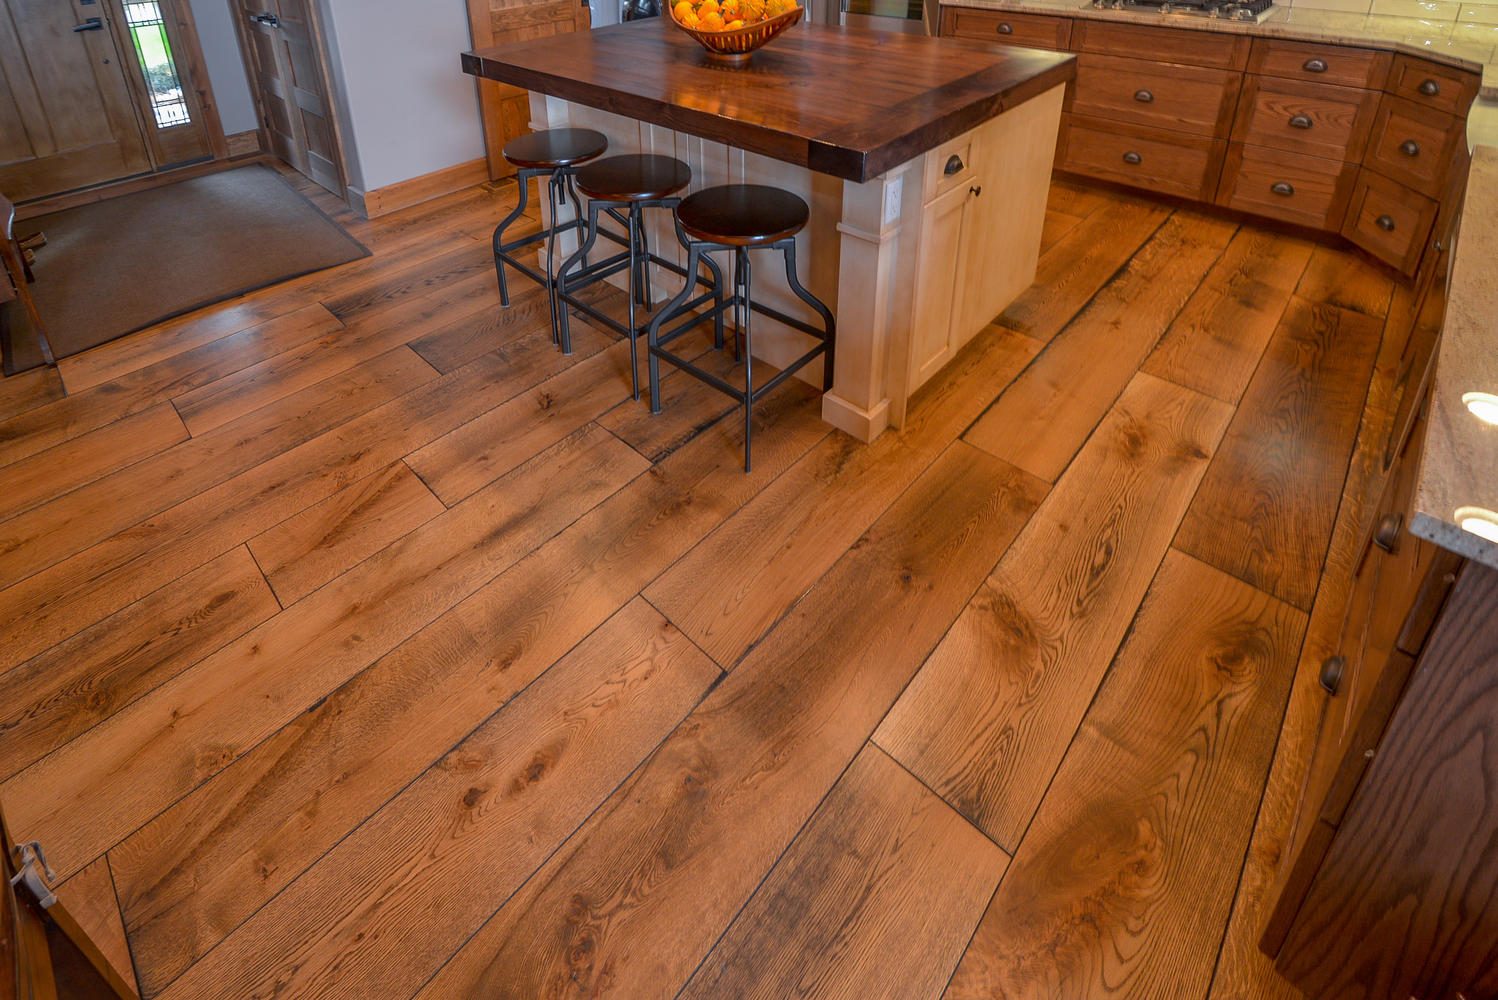 wide planks of white oak flooring in widths up to 11 inches